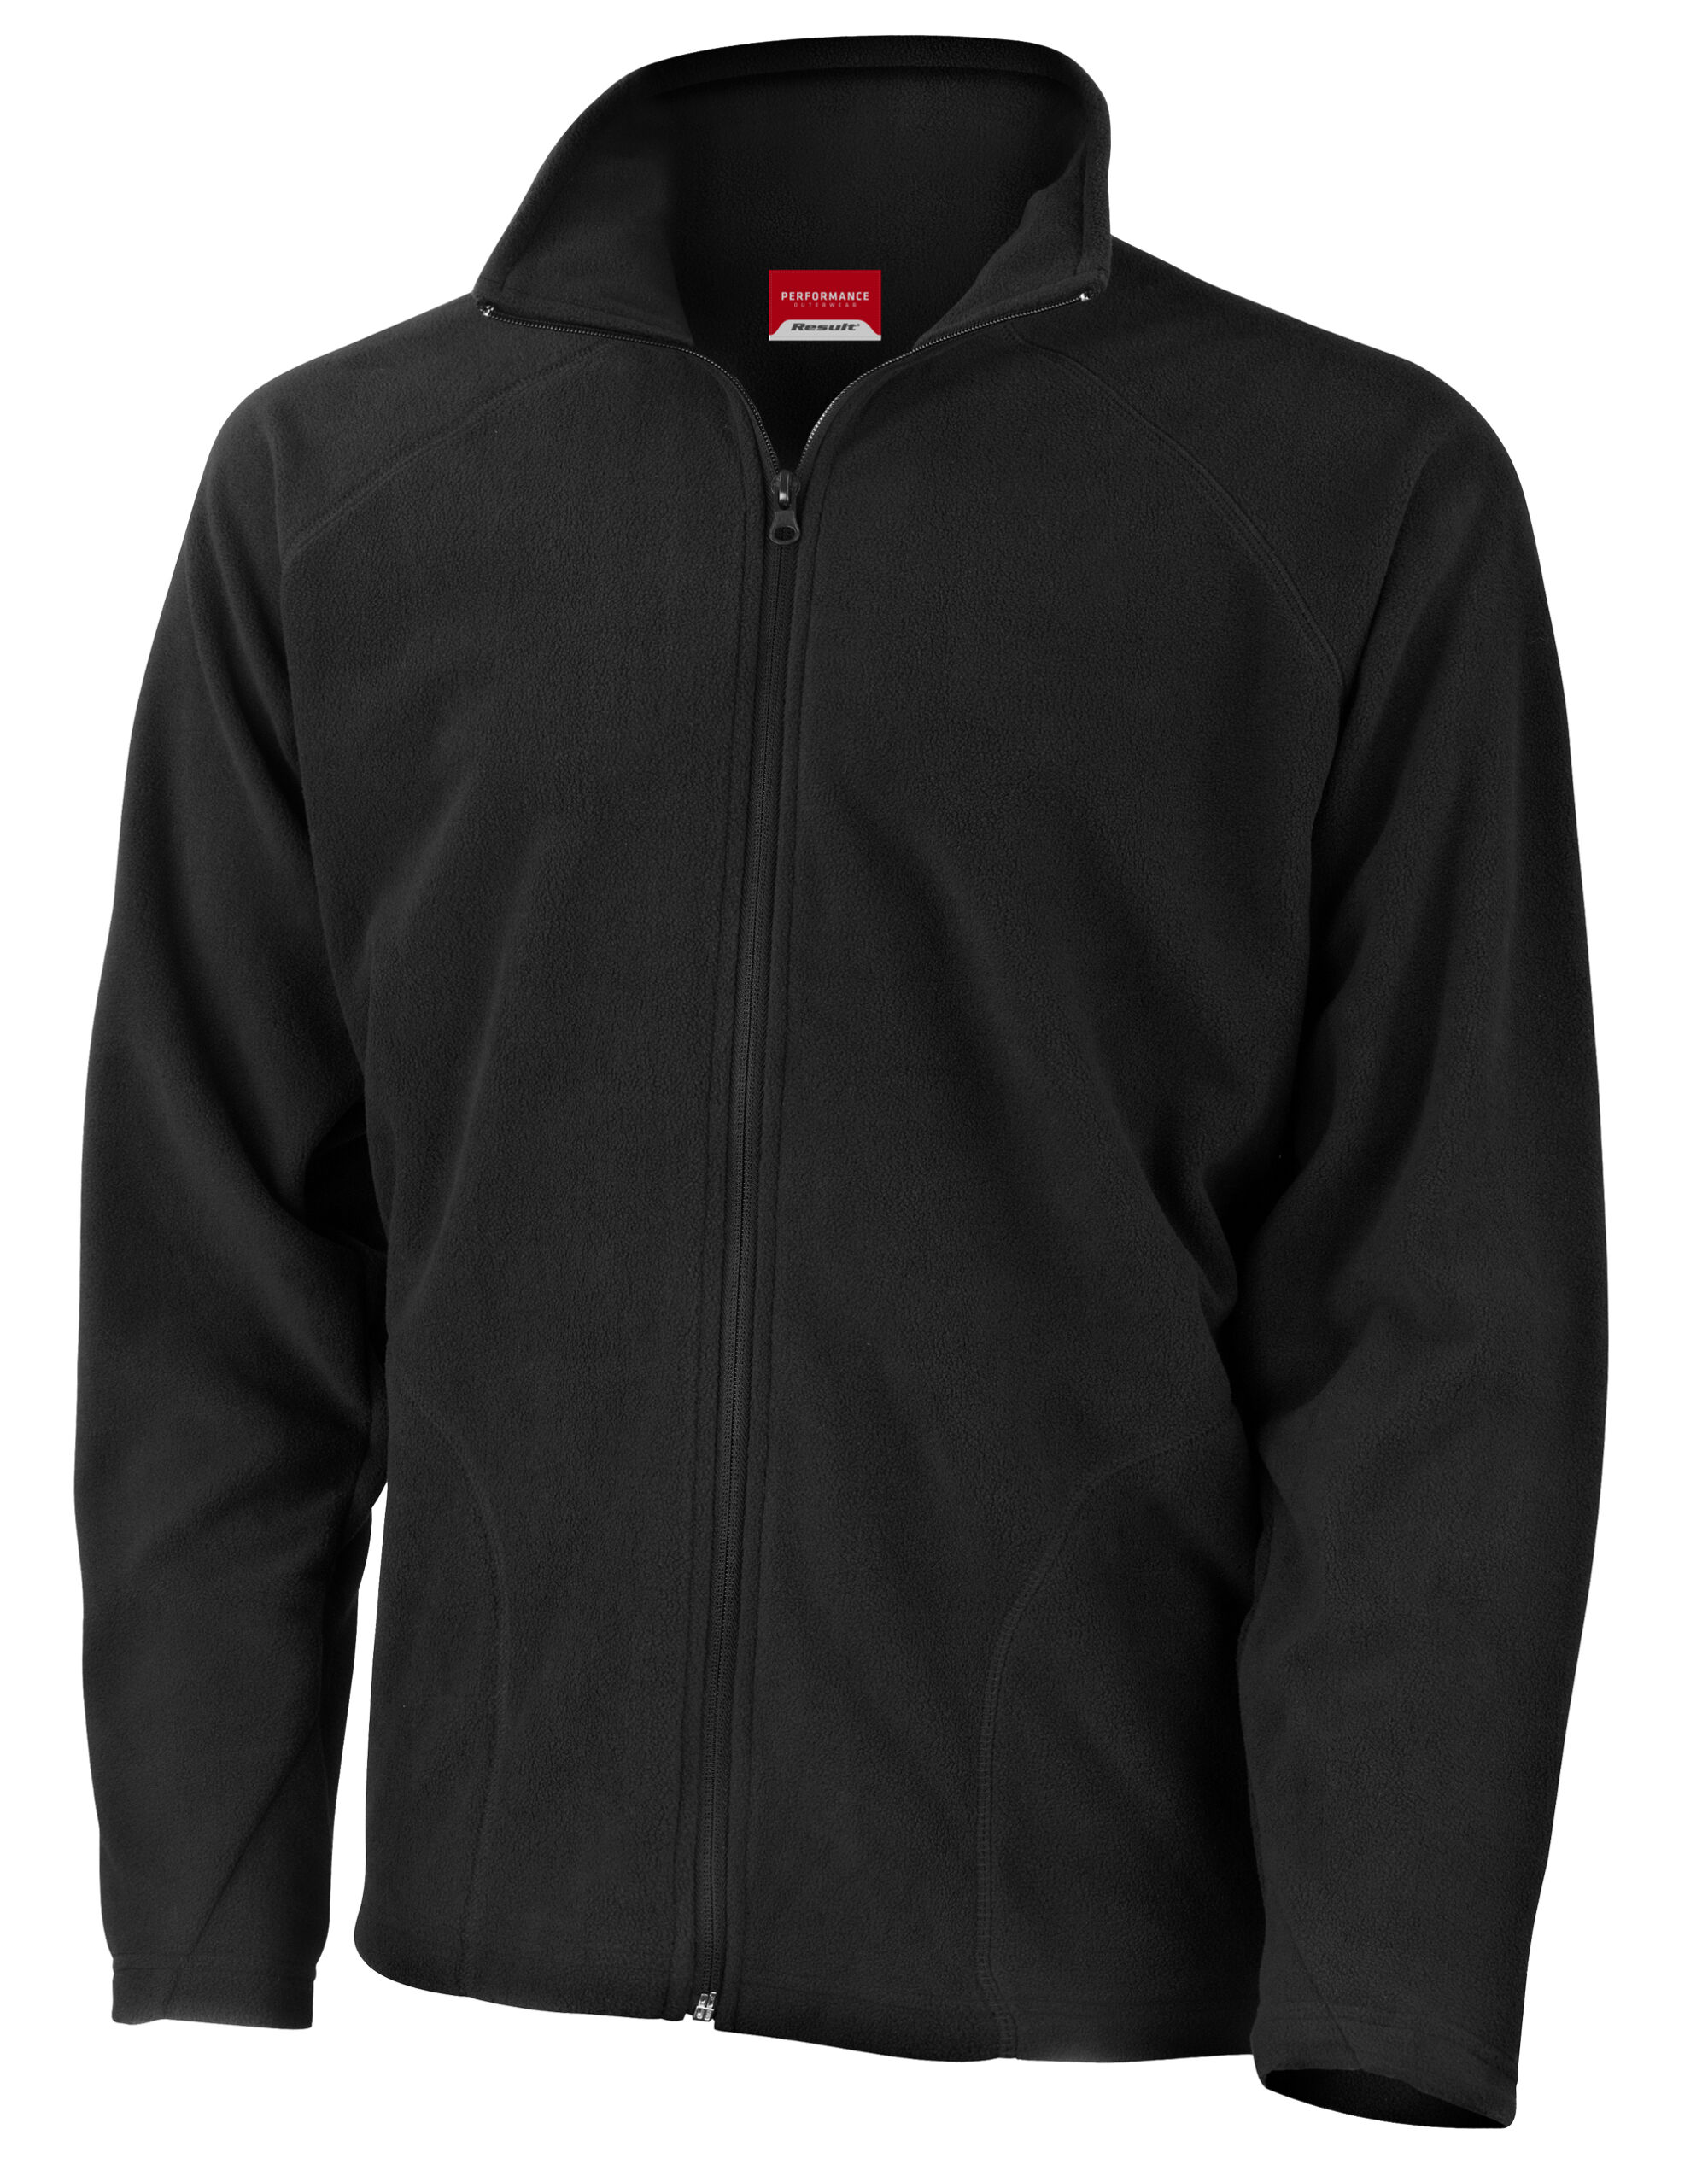 Core Men's Micron Fleece Jacket